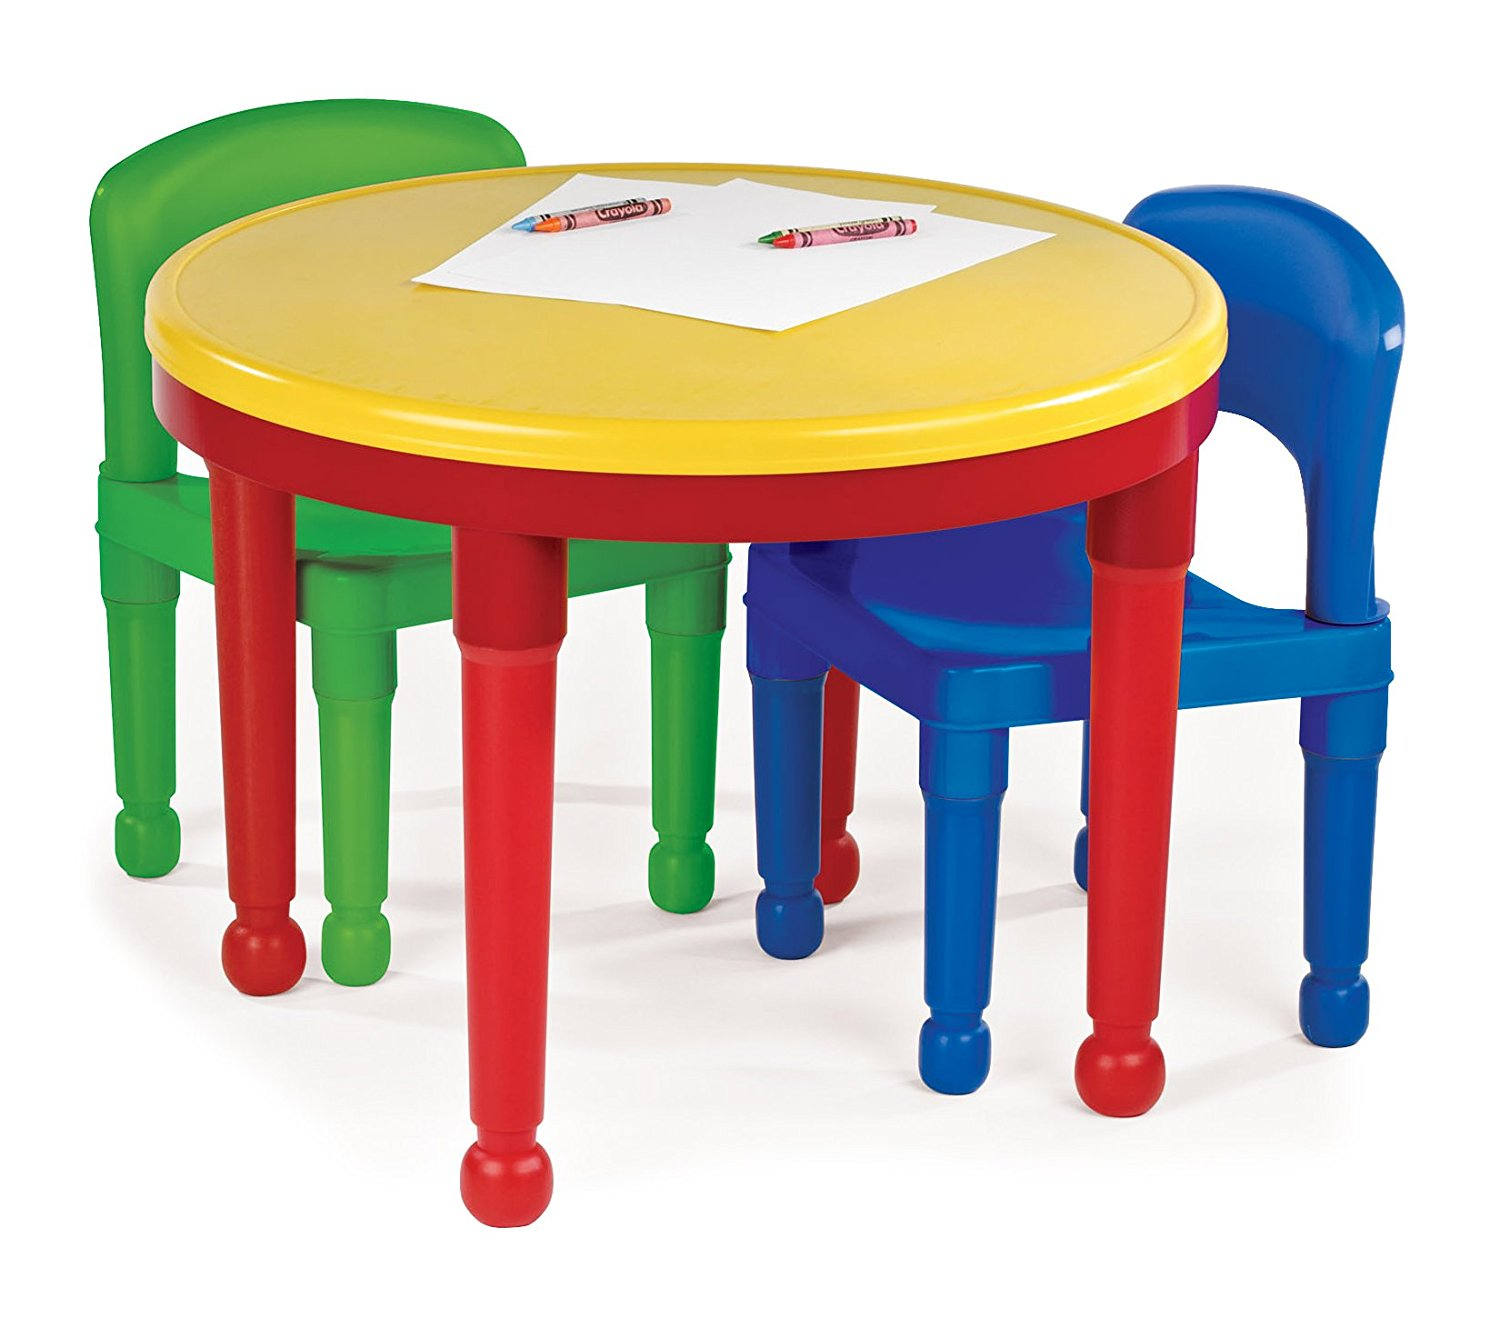 Toys R Us Kids Chairs Savvy Spending Amazon Tot Tutors Kids 2 In 1 Lego